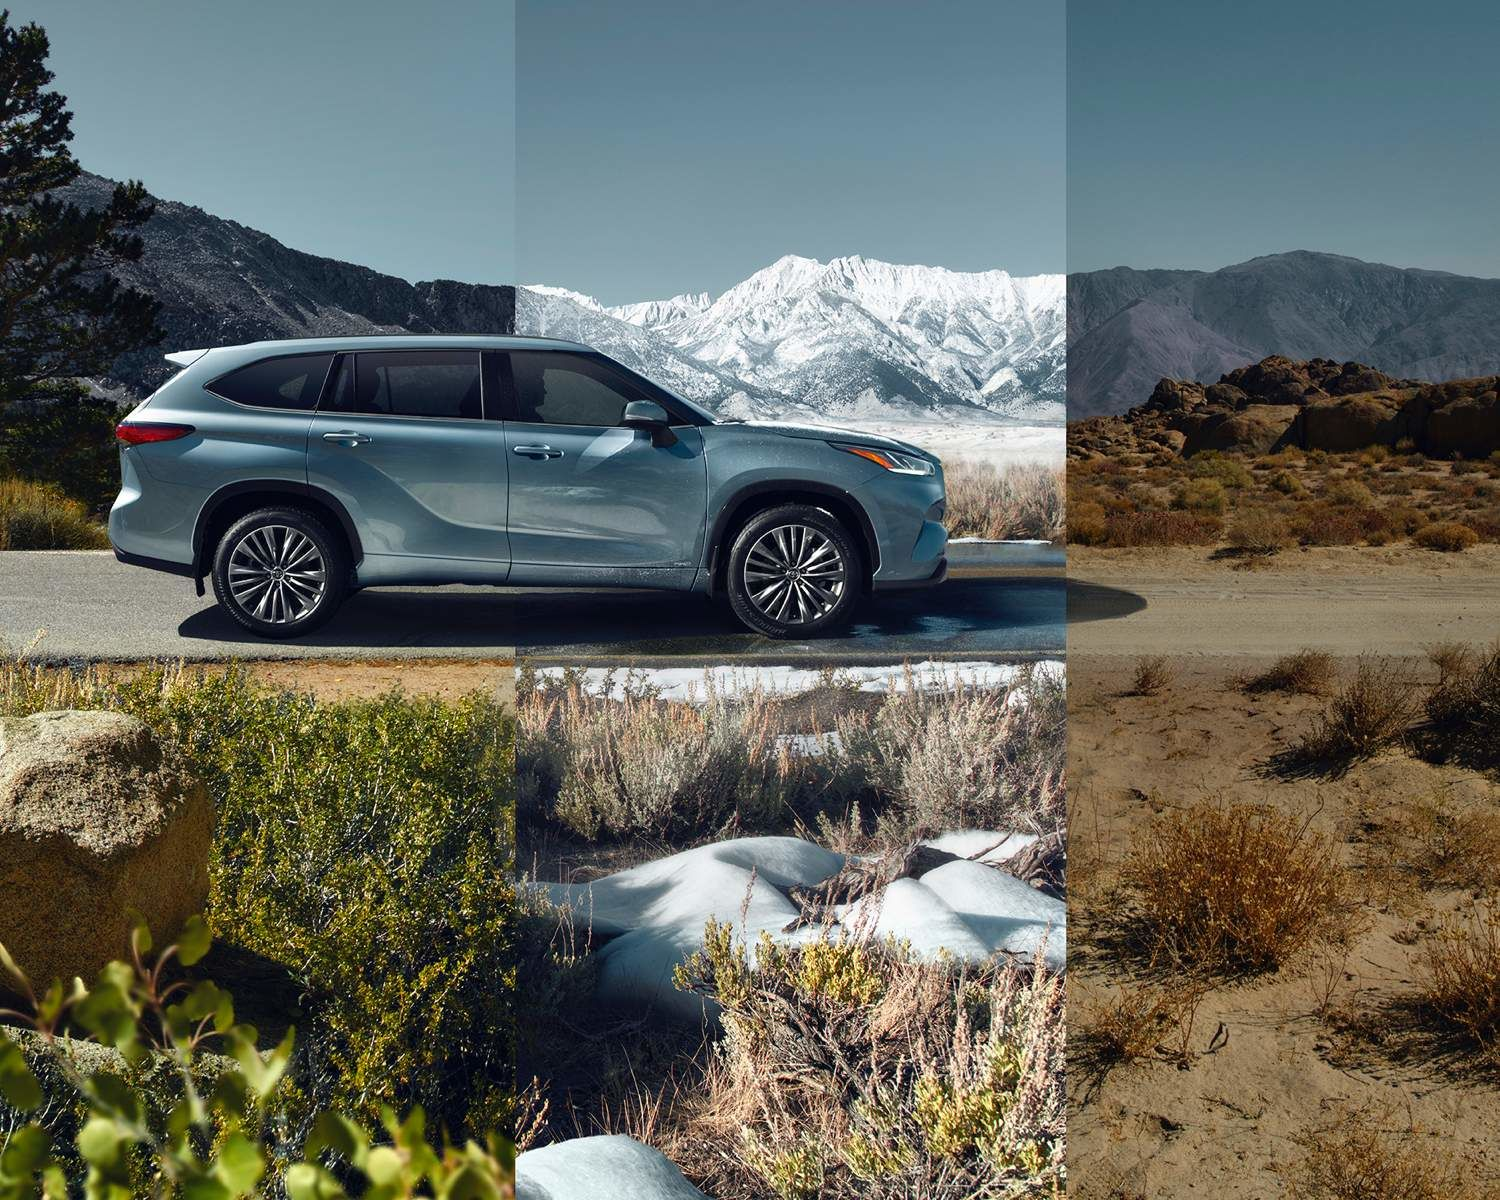 Highlander Platinum AWD shown in Moondust